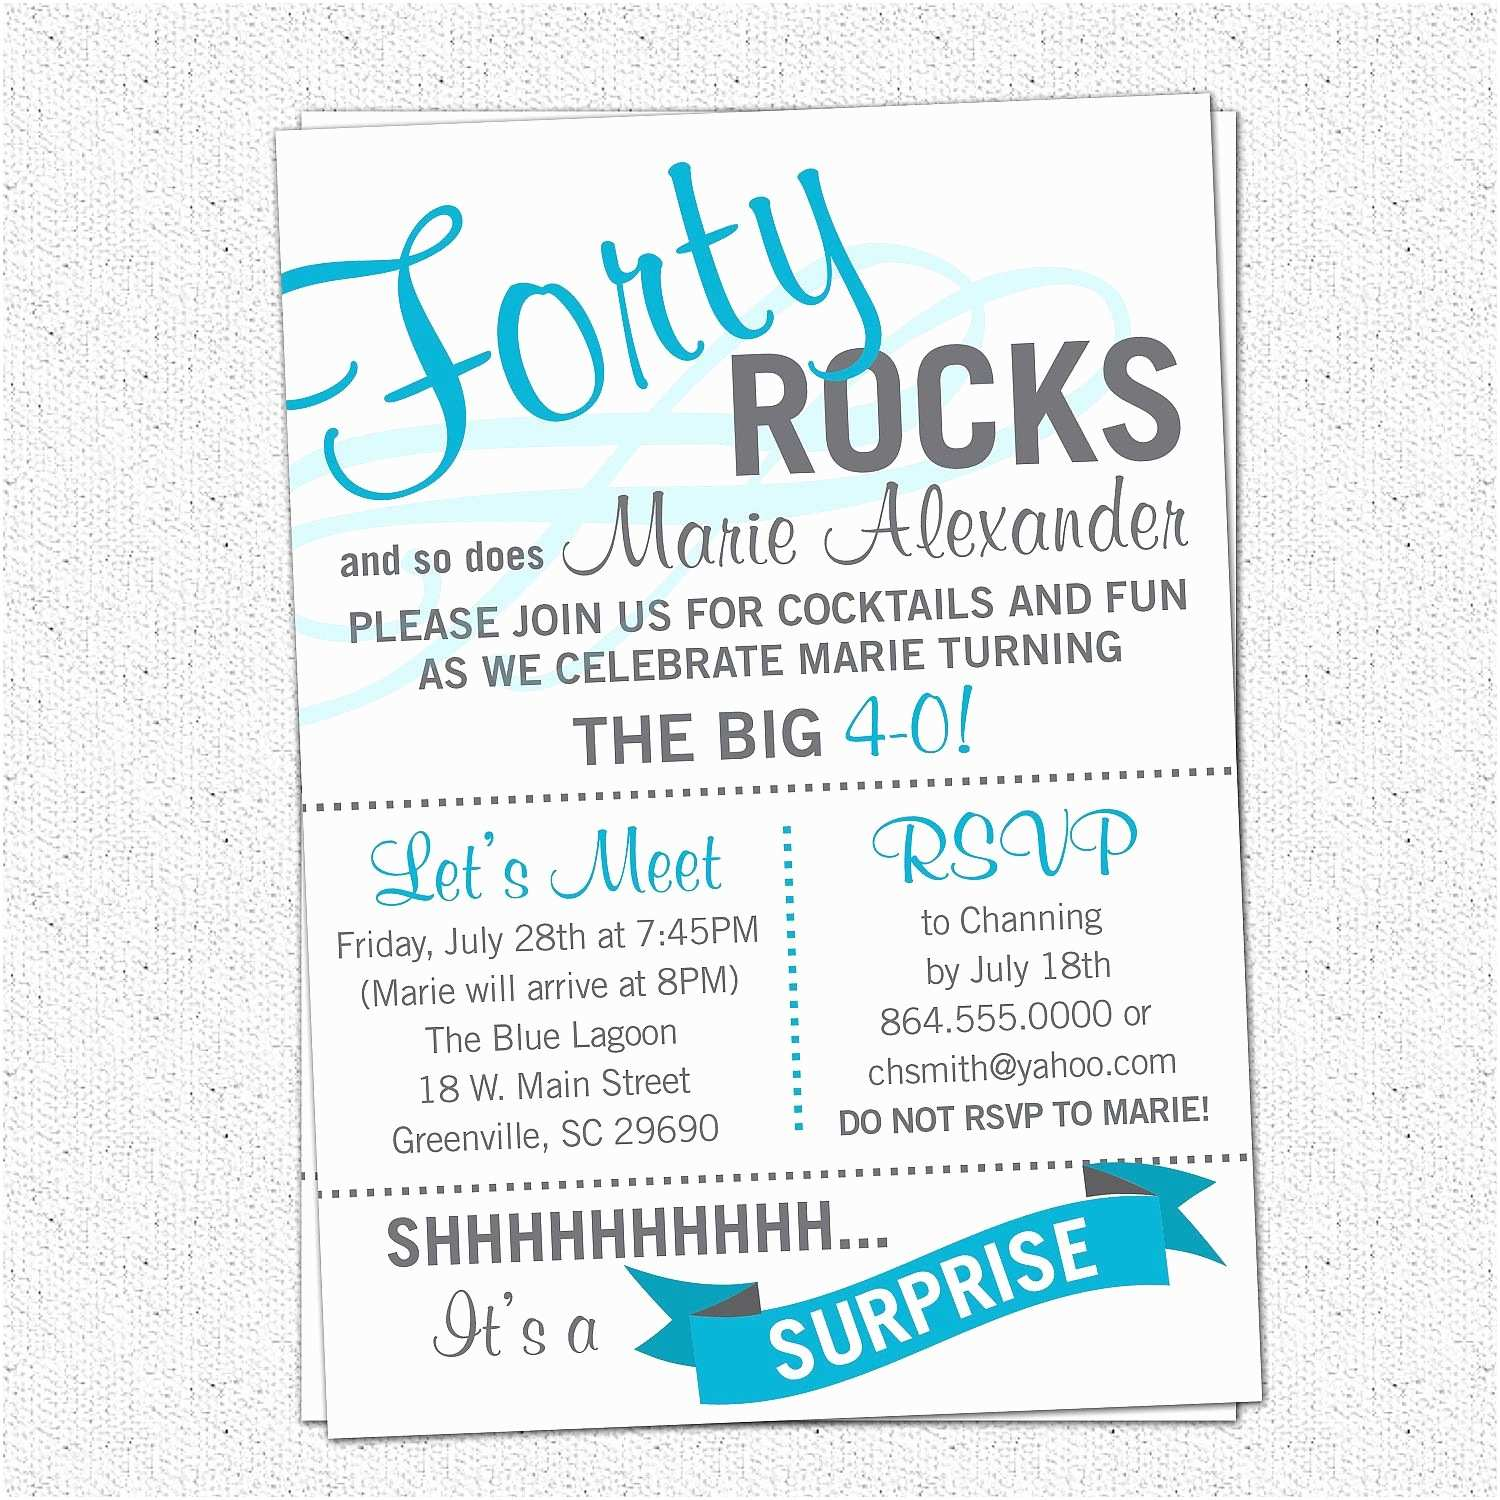 40th Birthday Party Invitations Printable forty Rocks Birthday Party Bash Invitation